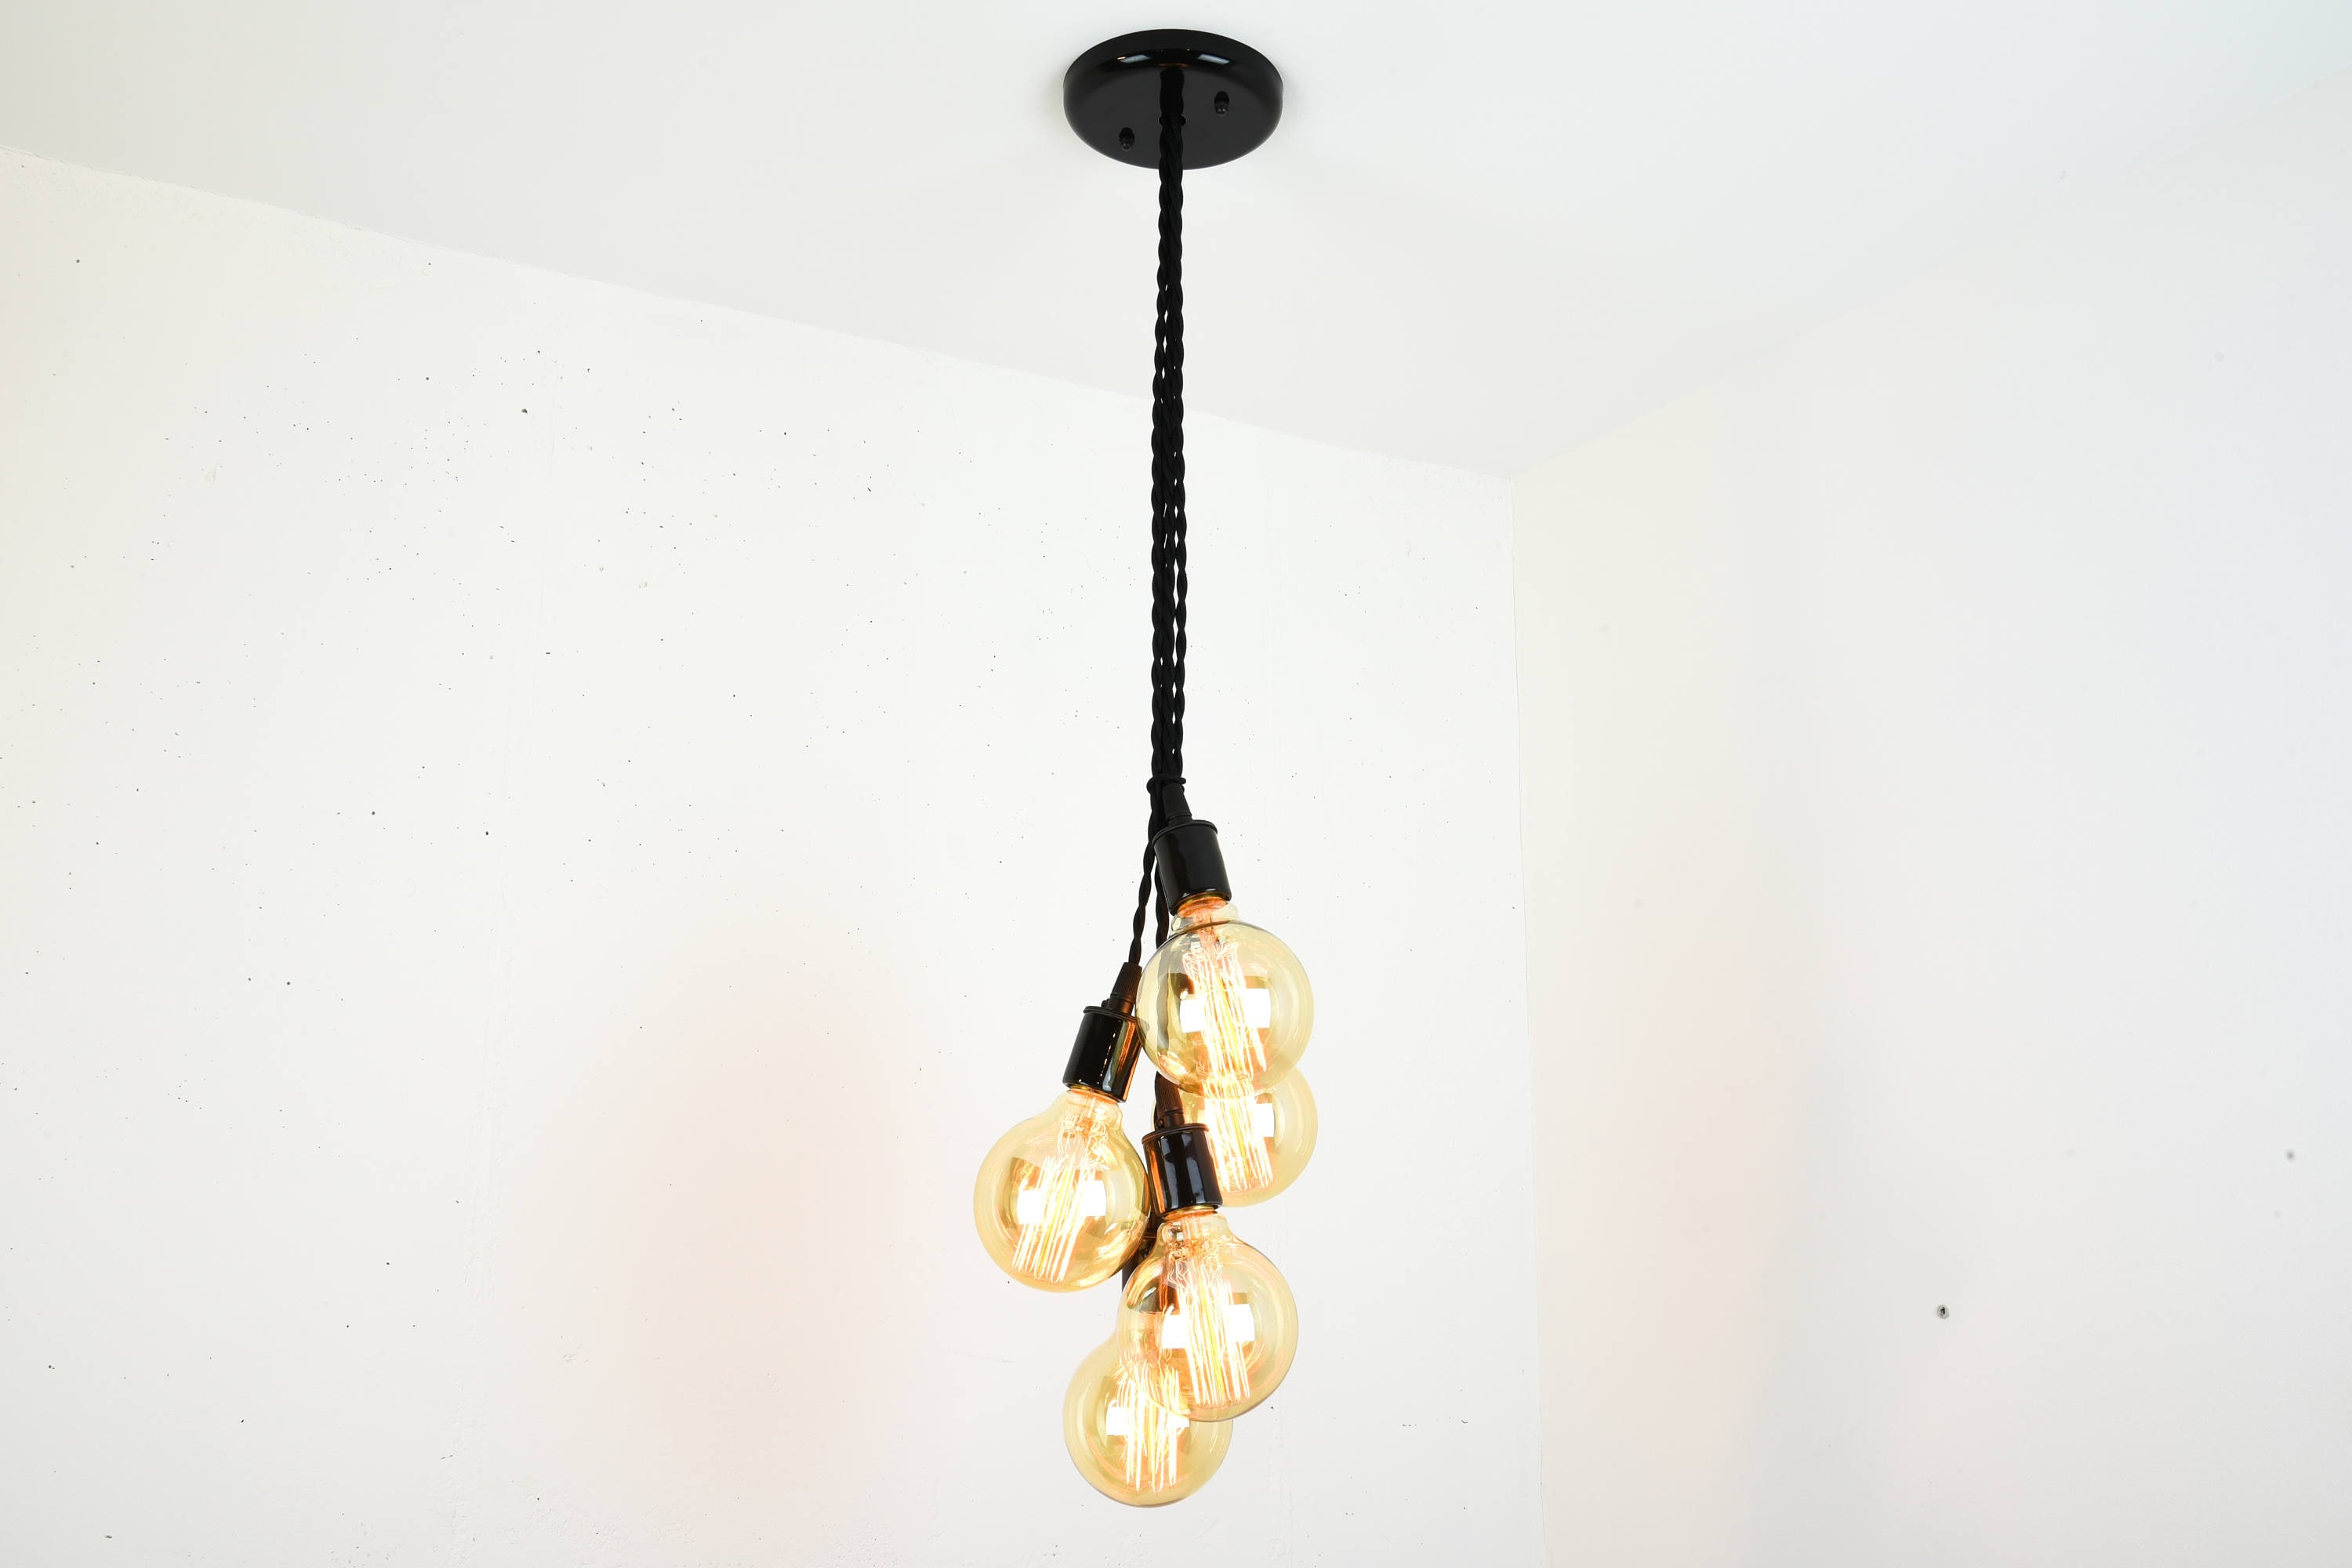 light destination lighting chandelier products bronze cylindrical multi pendants with shade brinley kichler pendant olde zoom